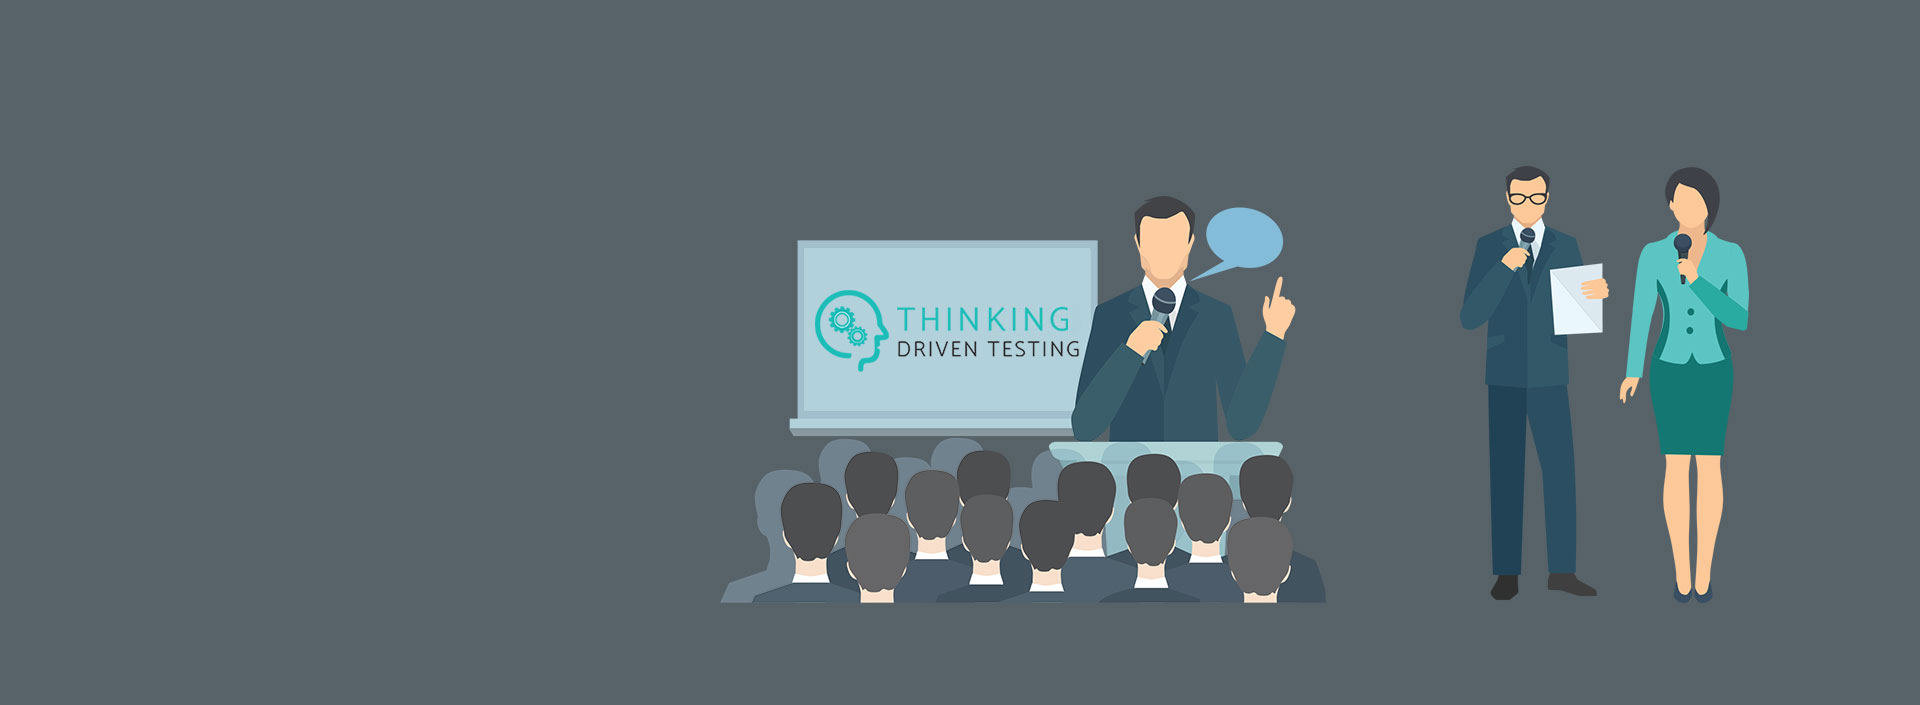 TDT Thinking Driven Testing trenerzy